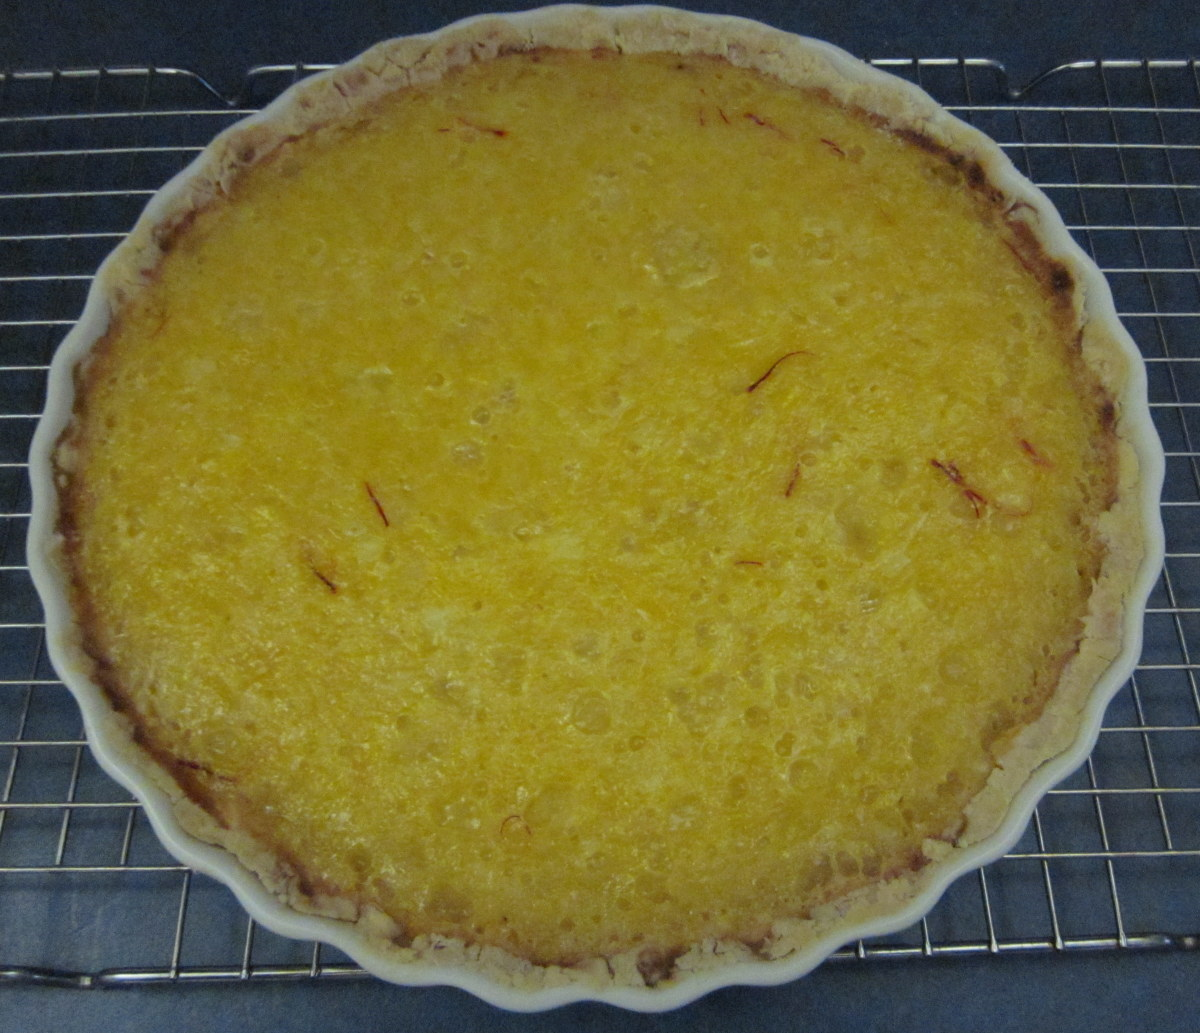 The finished tart